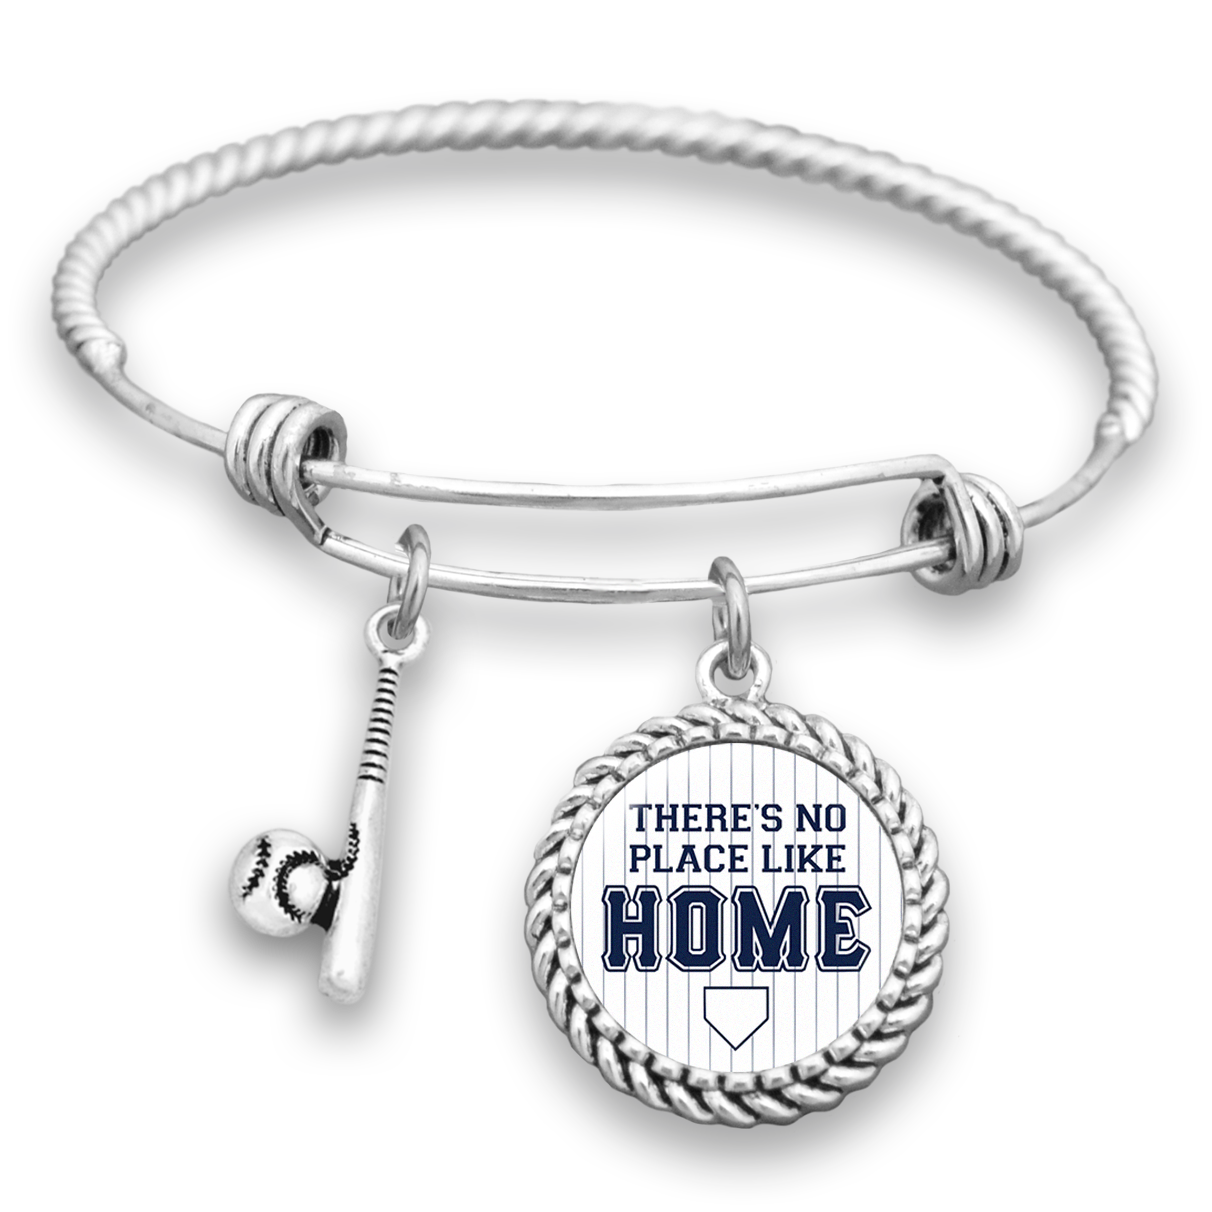 Baseball Charm Bracelet: Yankees There's No Place Like Home Baseball Charm Bracelet